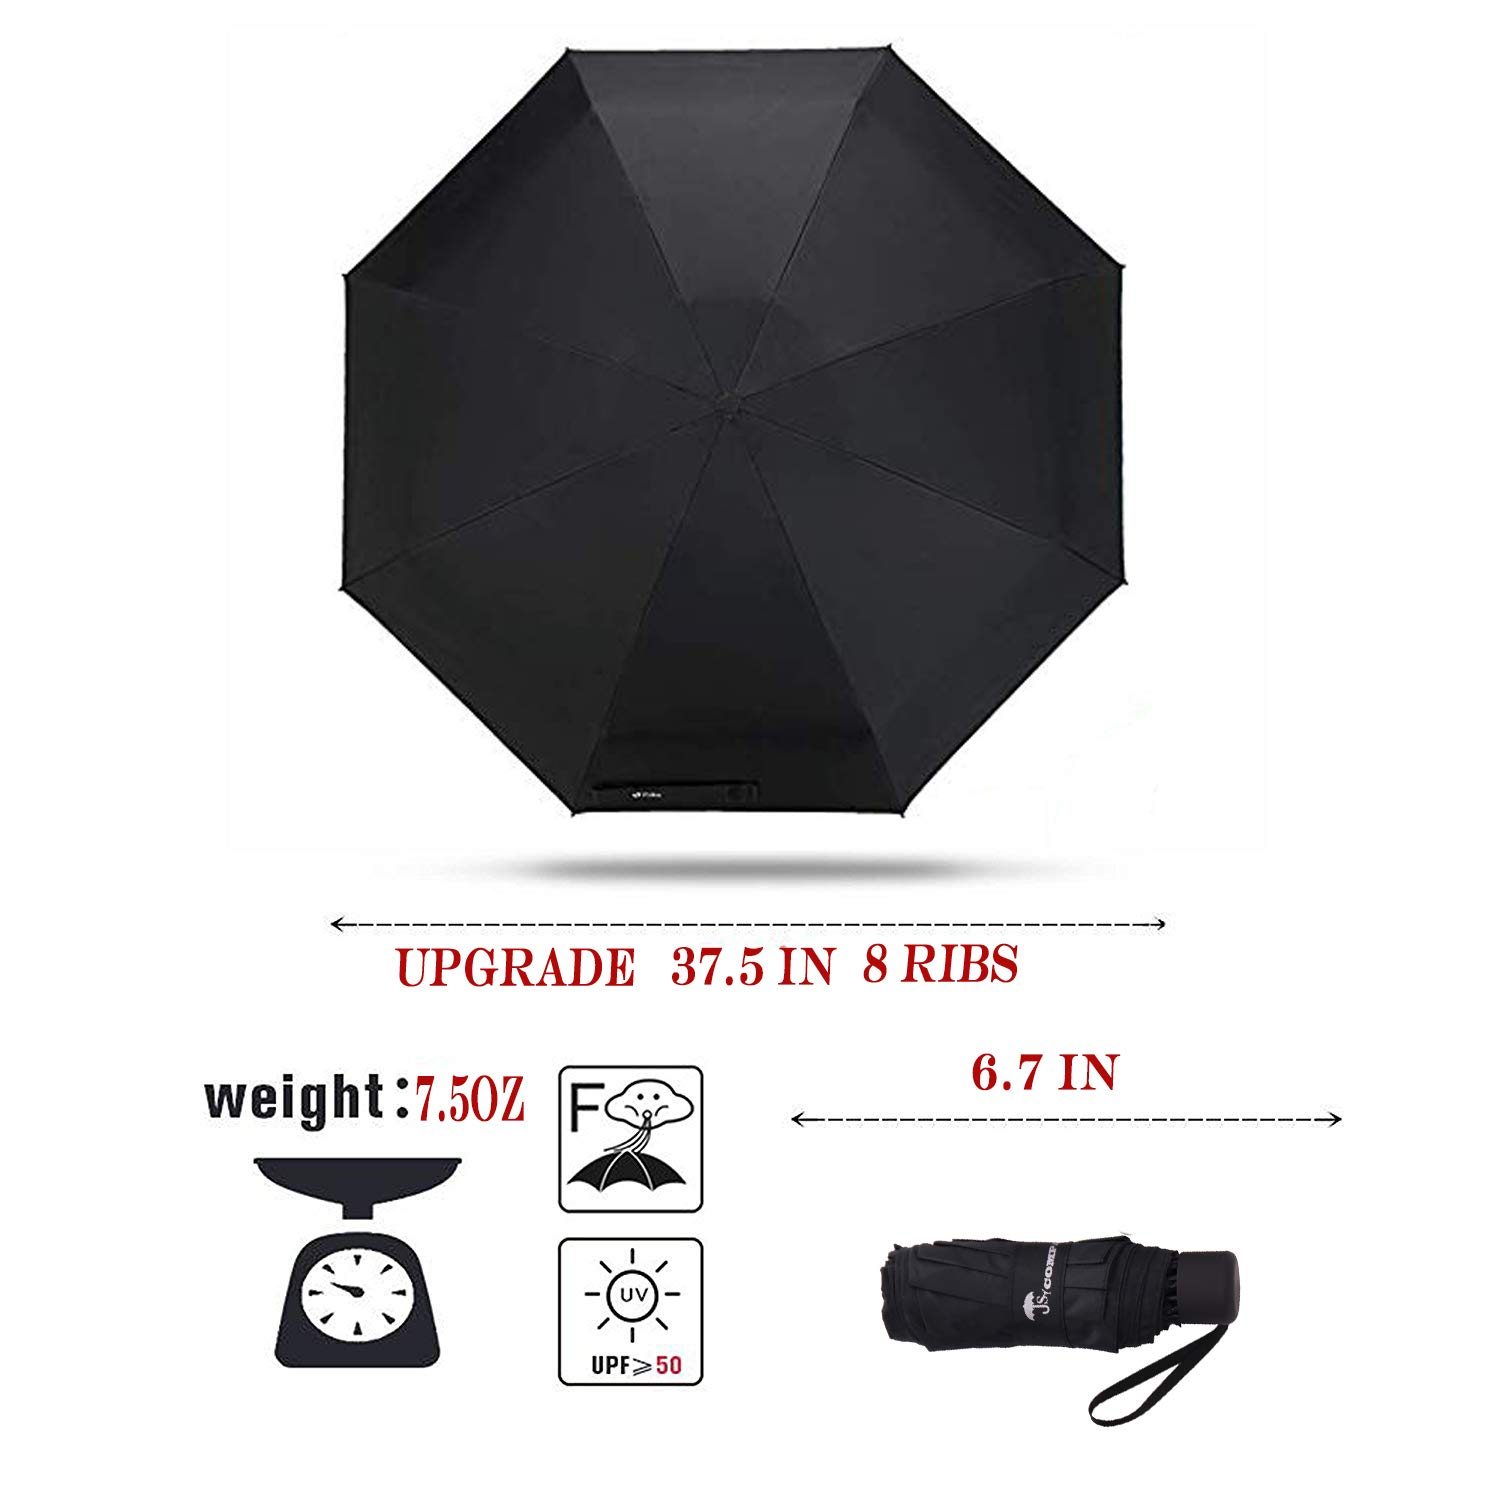 SY COMPACT Travel Umbrella - Lightweight Portable Mini Compact Umbrellas-Factory Outlet Shop (Black) by SY COMPACT (Image #2)